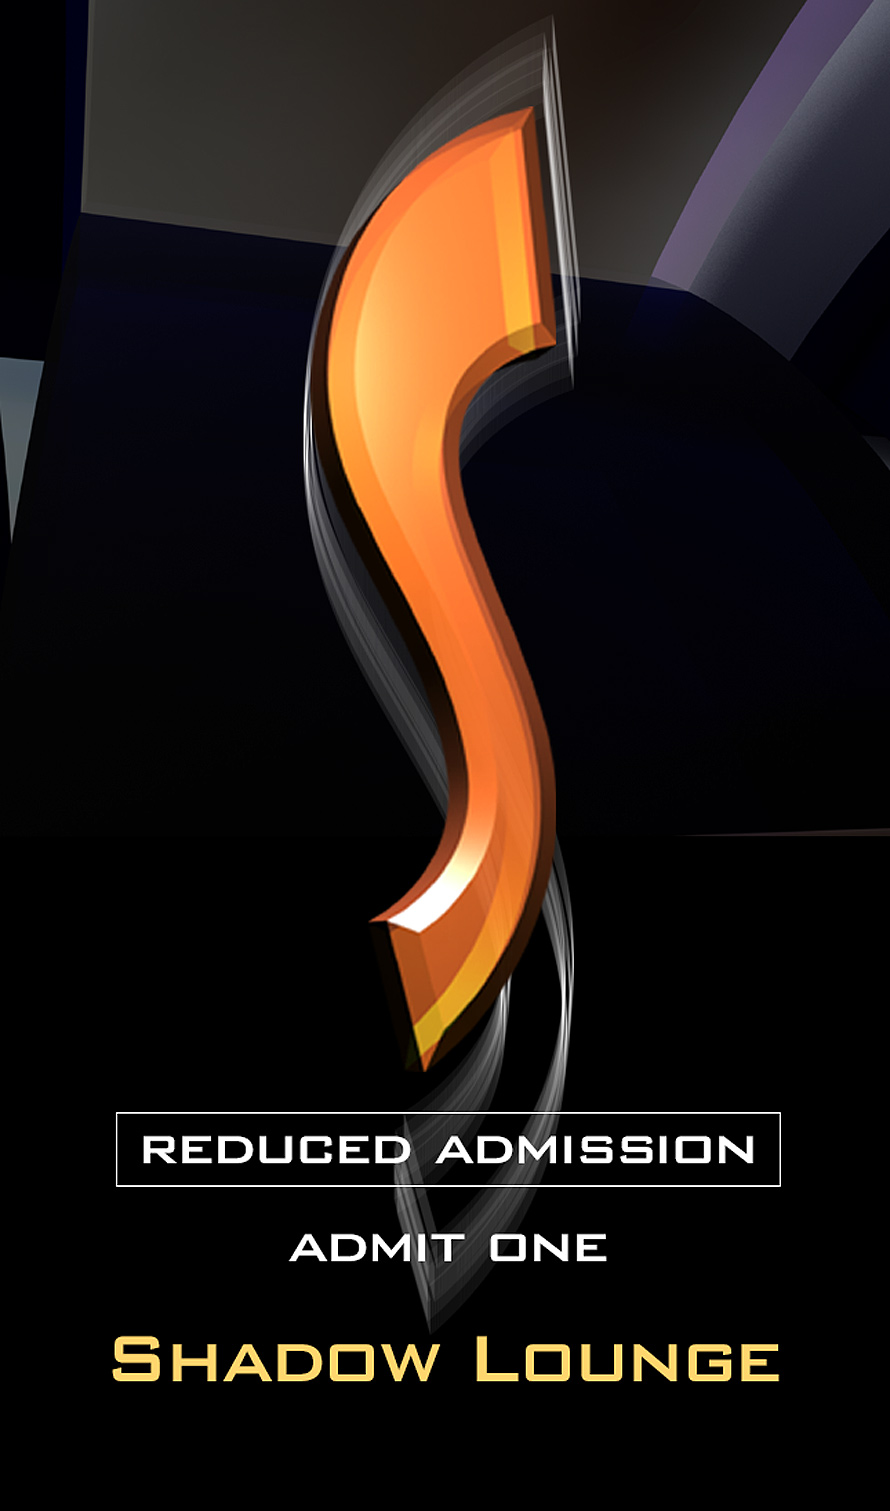 Shadow Lounge Reduced Admission